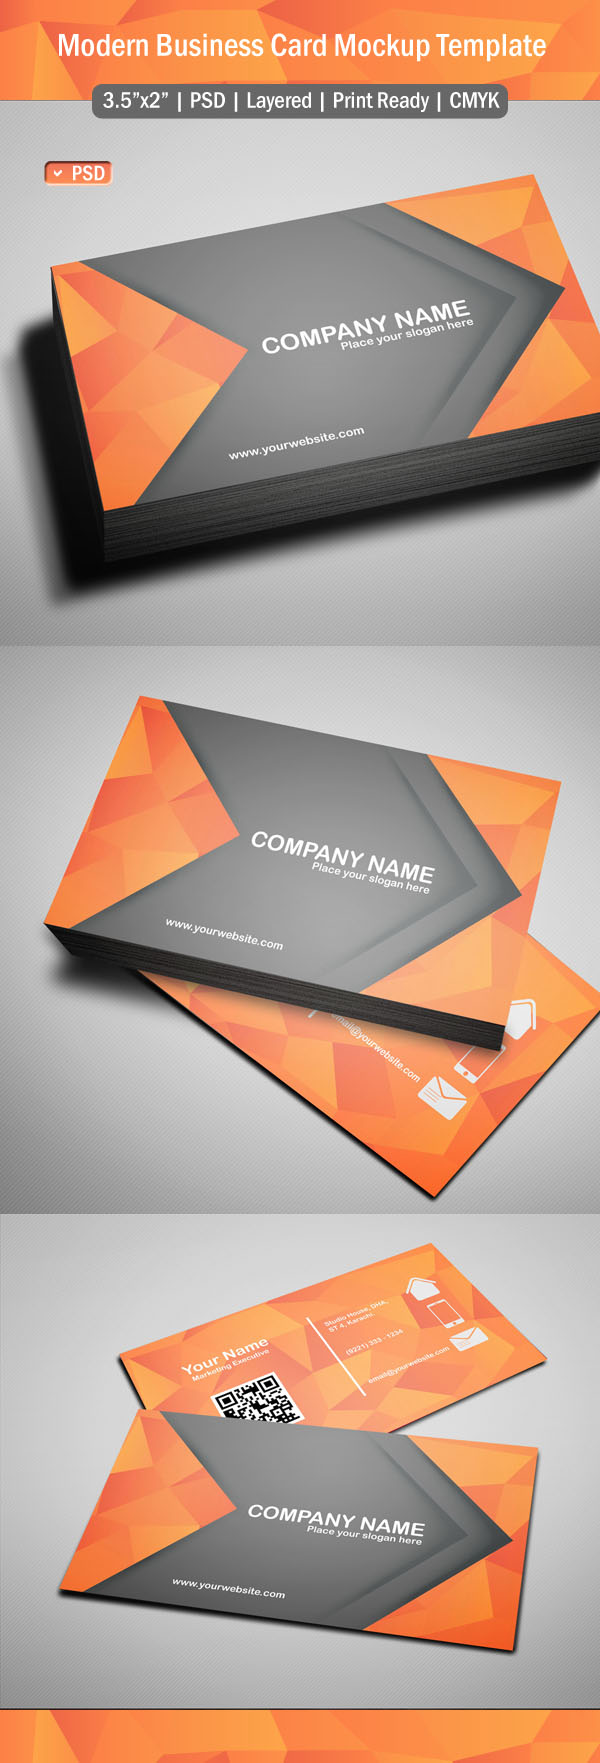 Free business card design templates etamemibawa free business card design templates accmission Choice Image